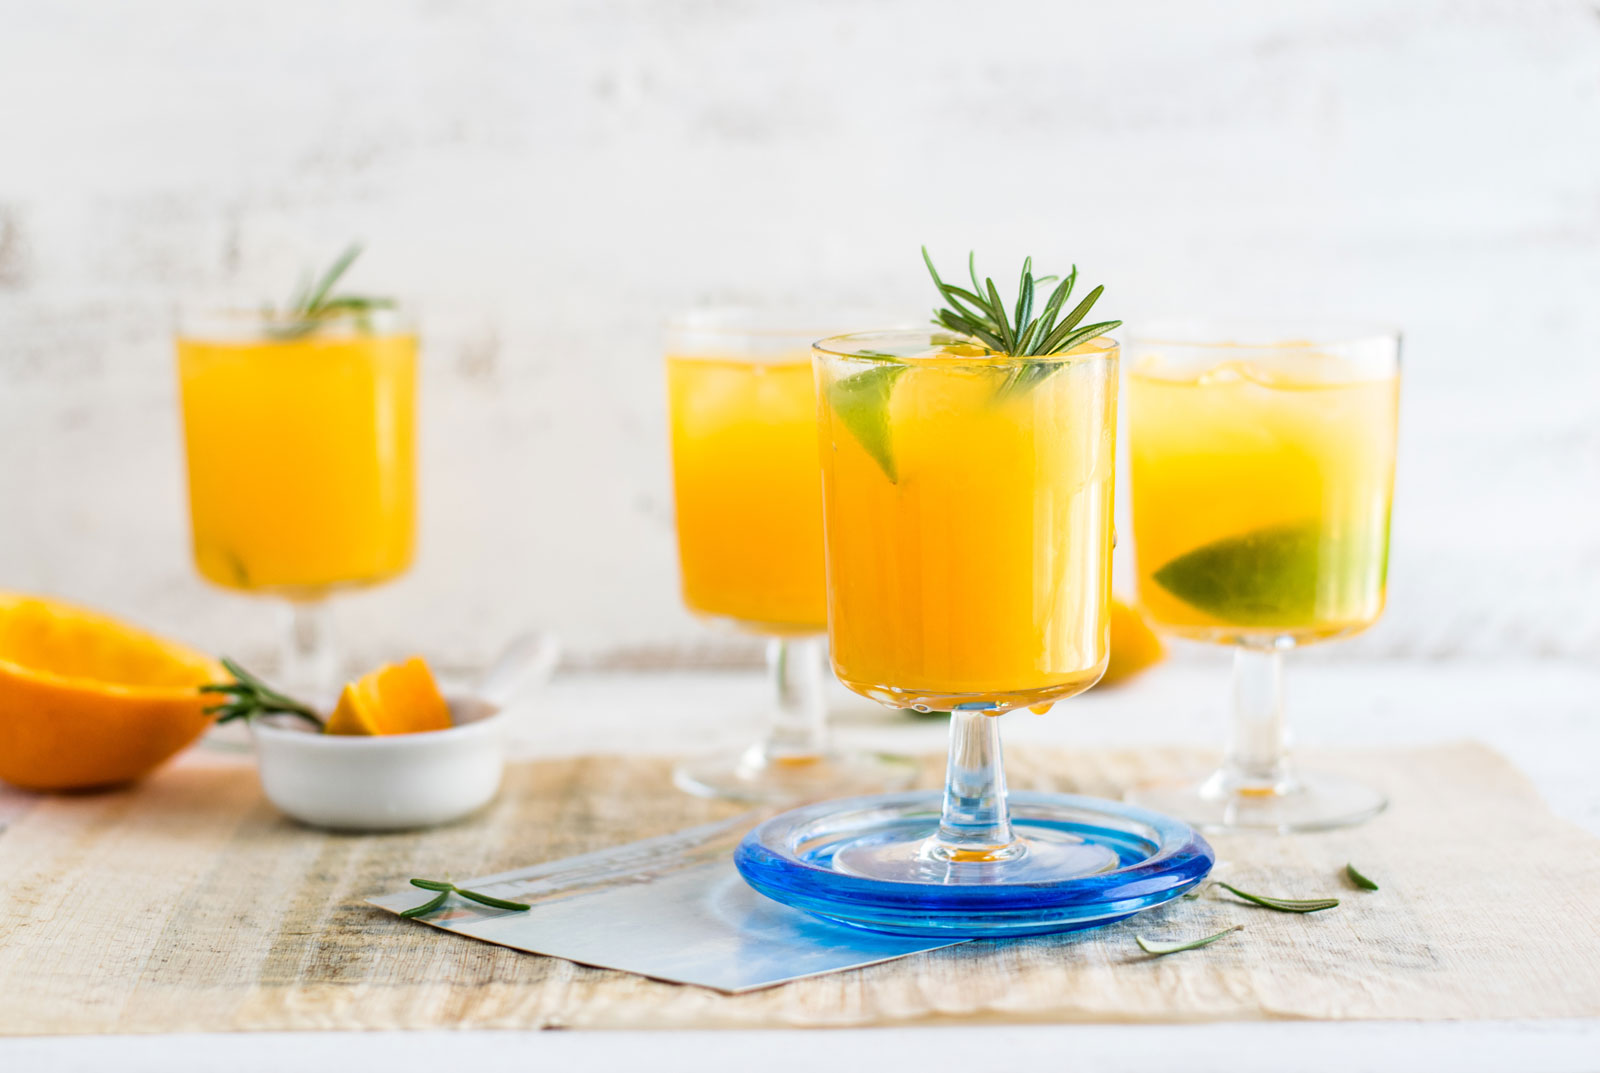 Fruit Juice   7 Things To Look For When Buying Healthy Juice